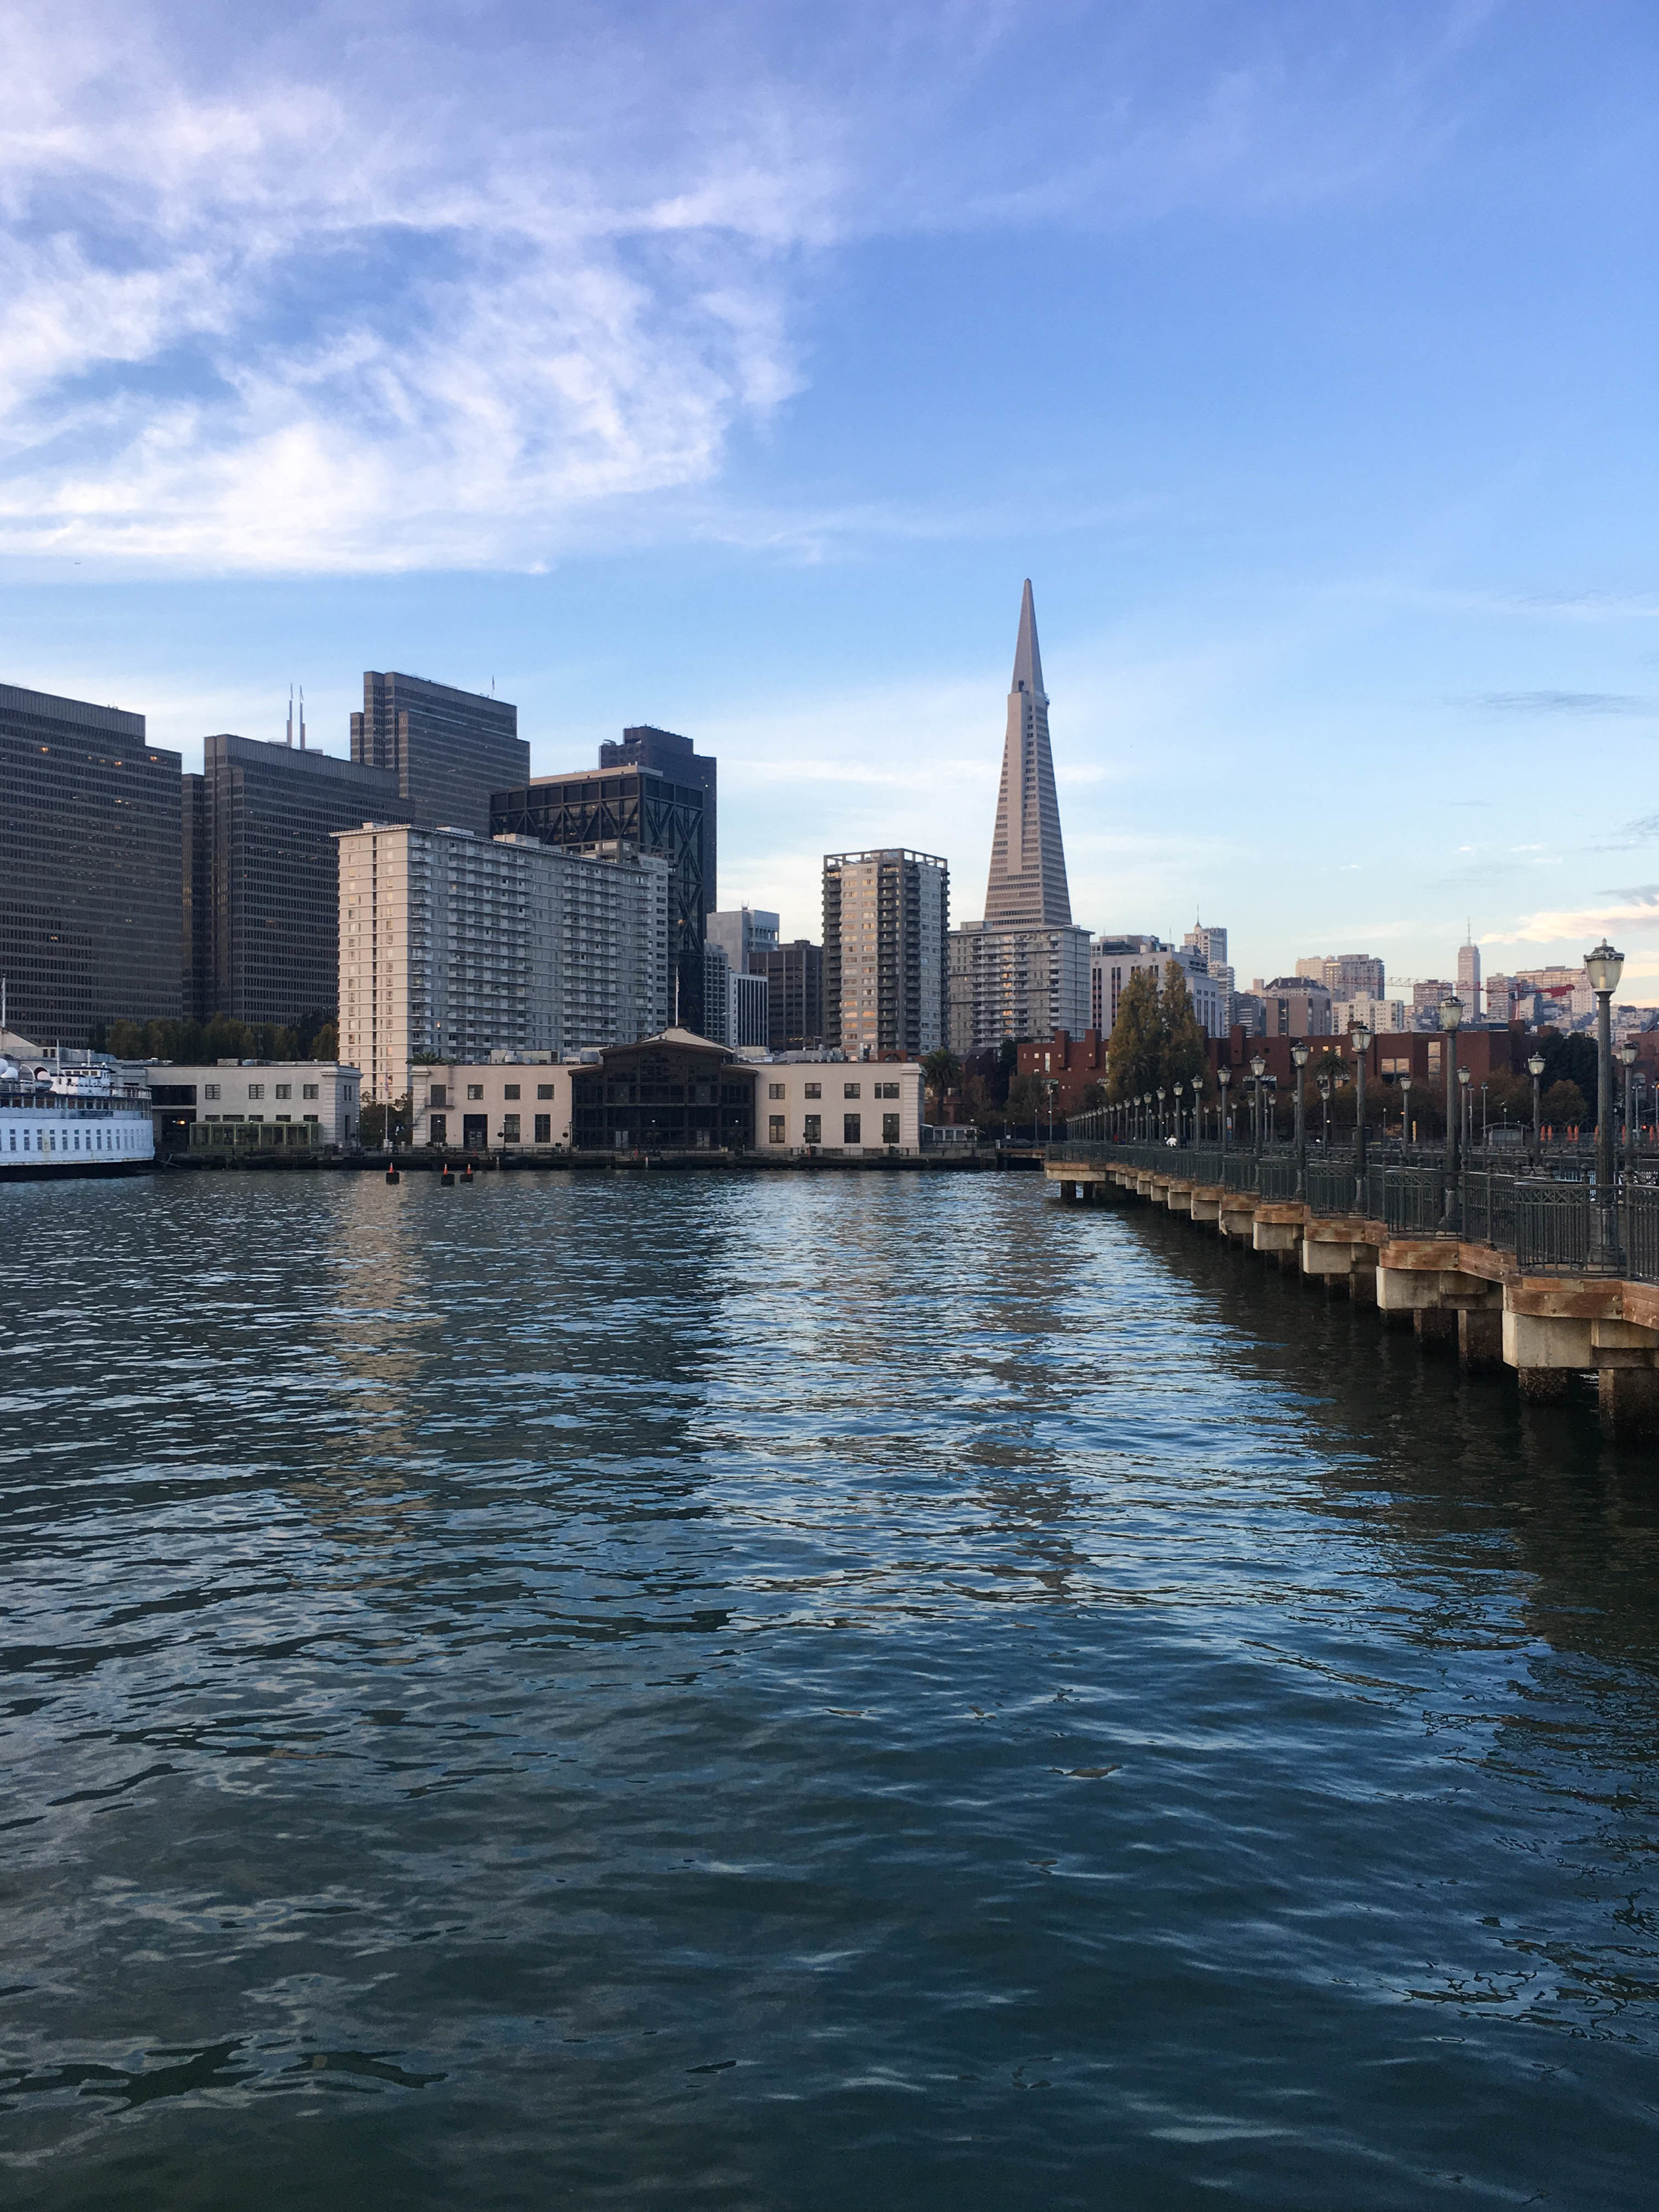 "<p style=""font-family:brandon-grotesque;font-weight:500; font-size:11px; text-center:left; color:light grey;letter-spacing: 1px"">OCTOBER 8, 2017 • FROM THE PIER • � San Francisco, CA</p>"